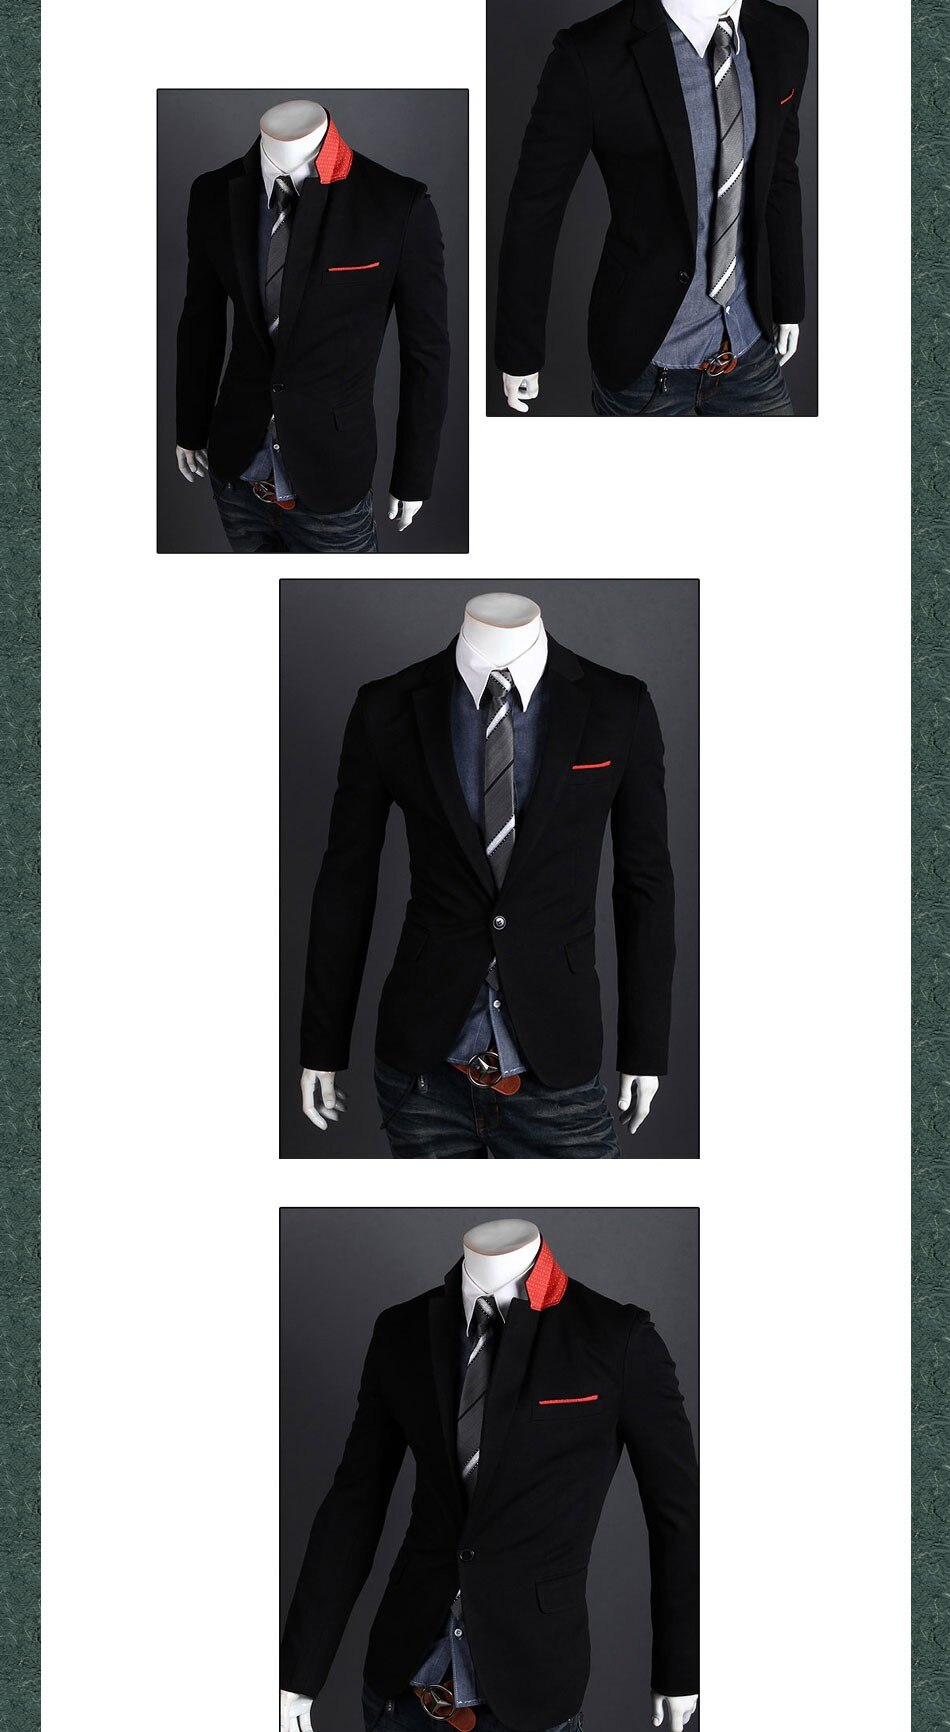 New 2020  Autumn winter men's suit Collar Unique Spell British Casual Single Breasted Slim Fit blaser masculino brand-clothing